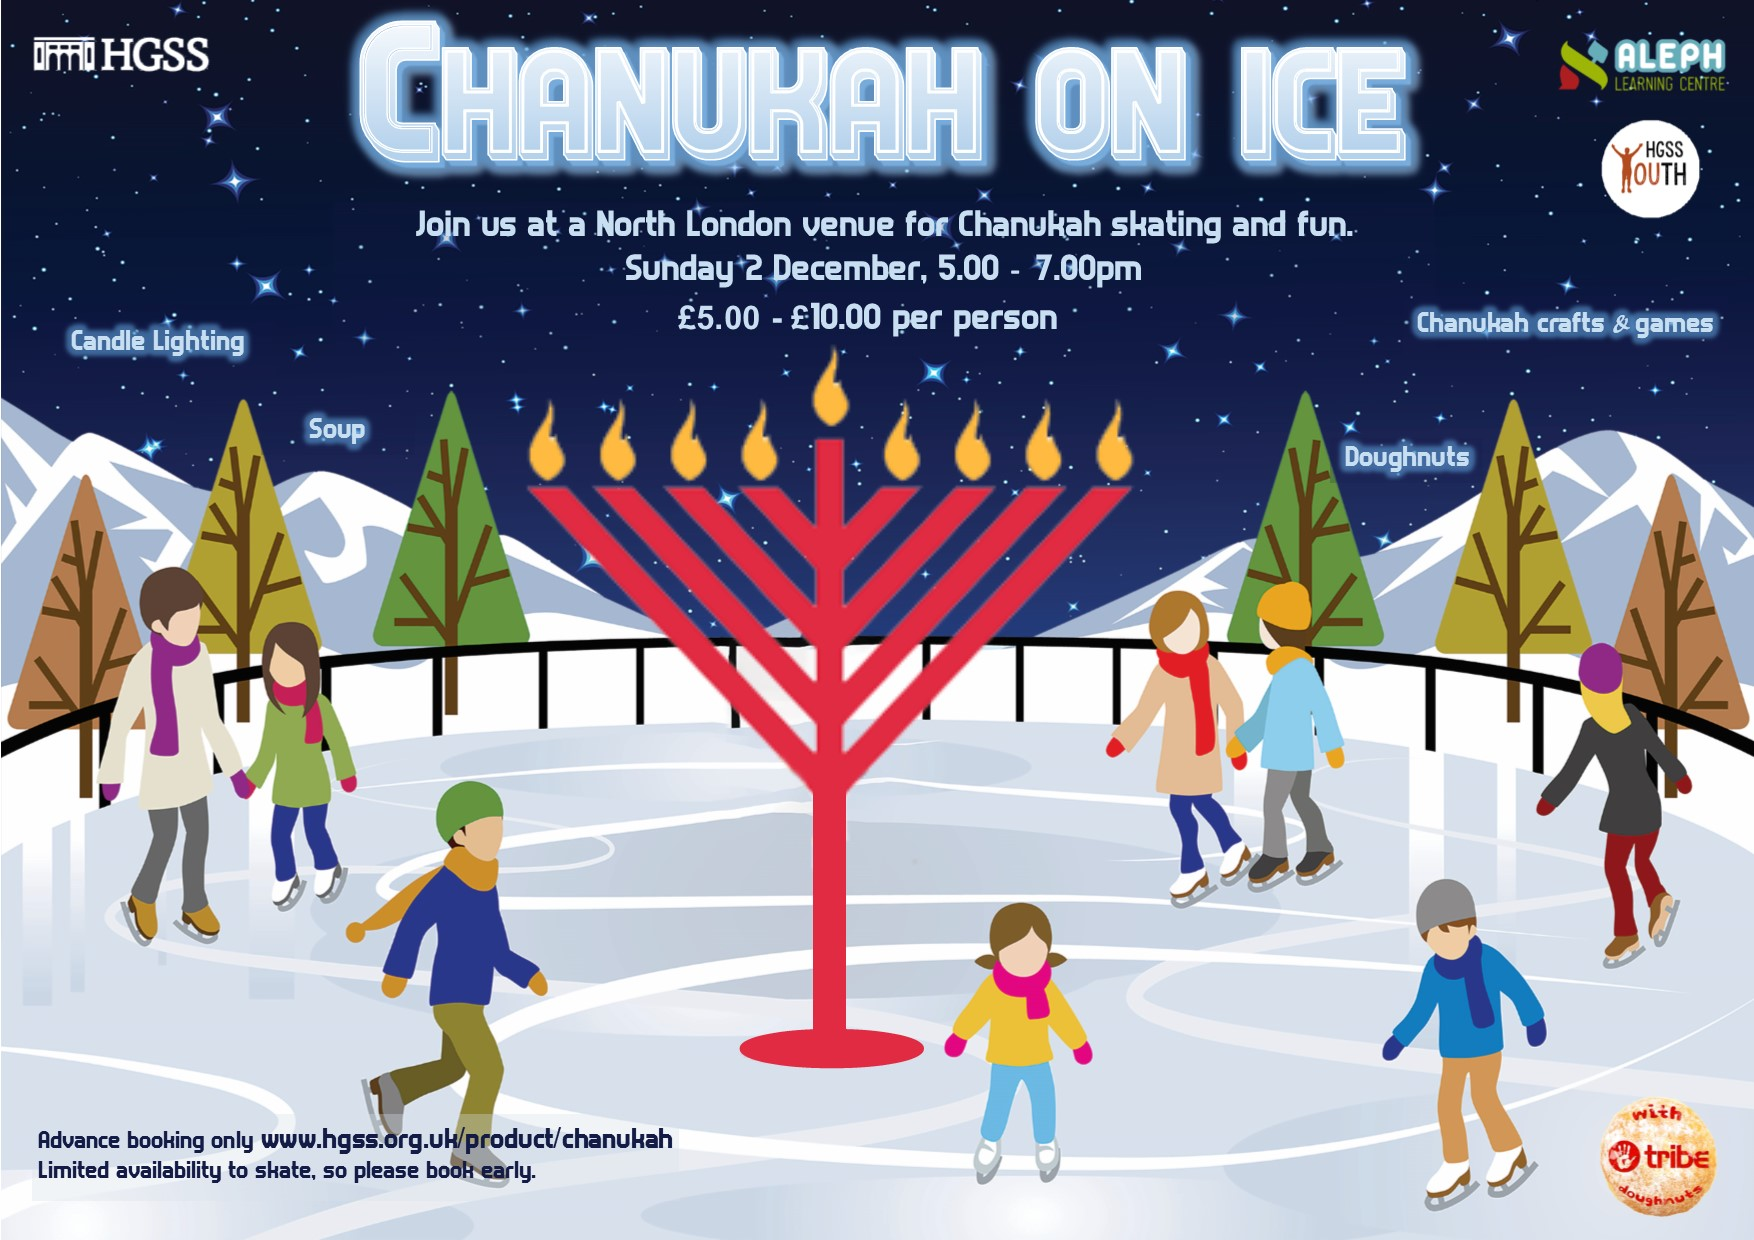 Chanukah on Ice @ North London